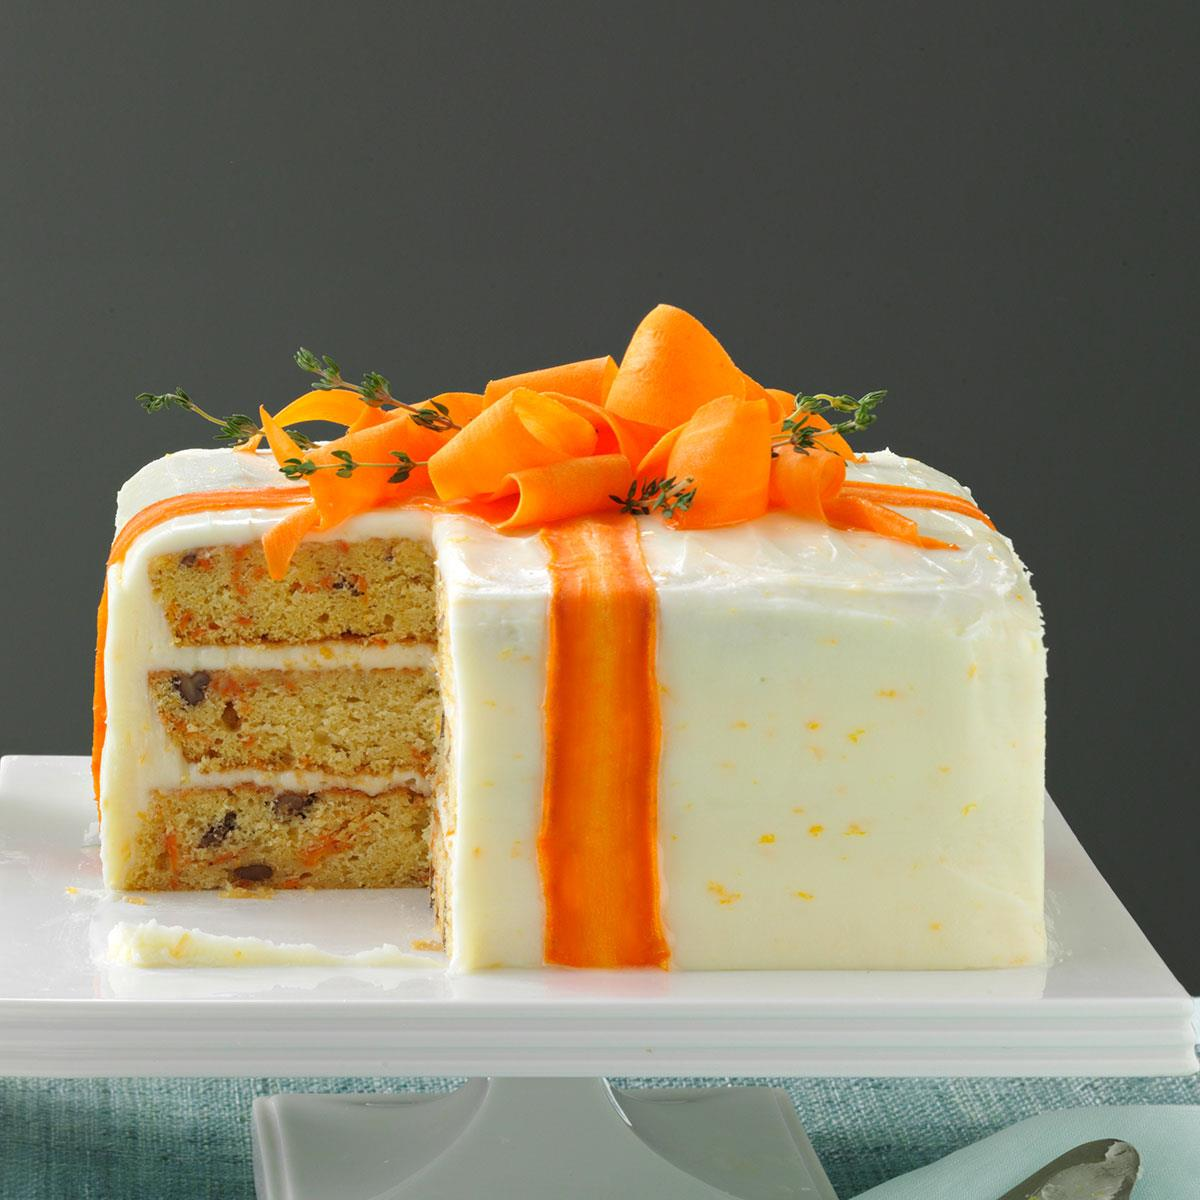 Banana And Carrot Cake Taste